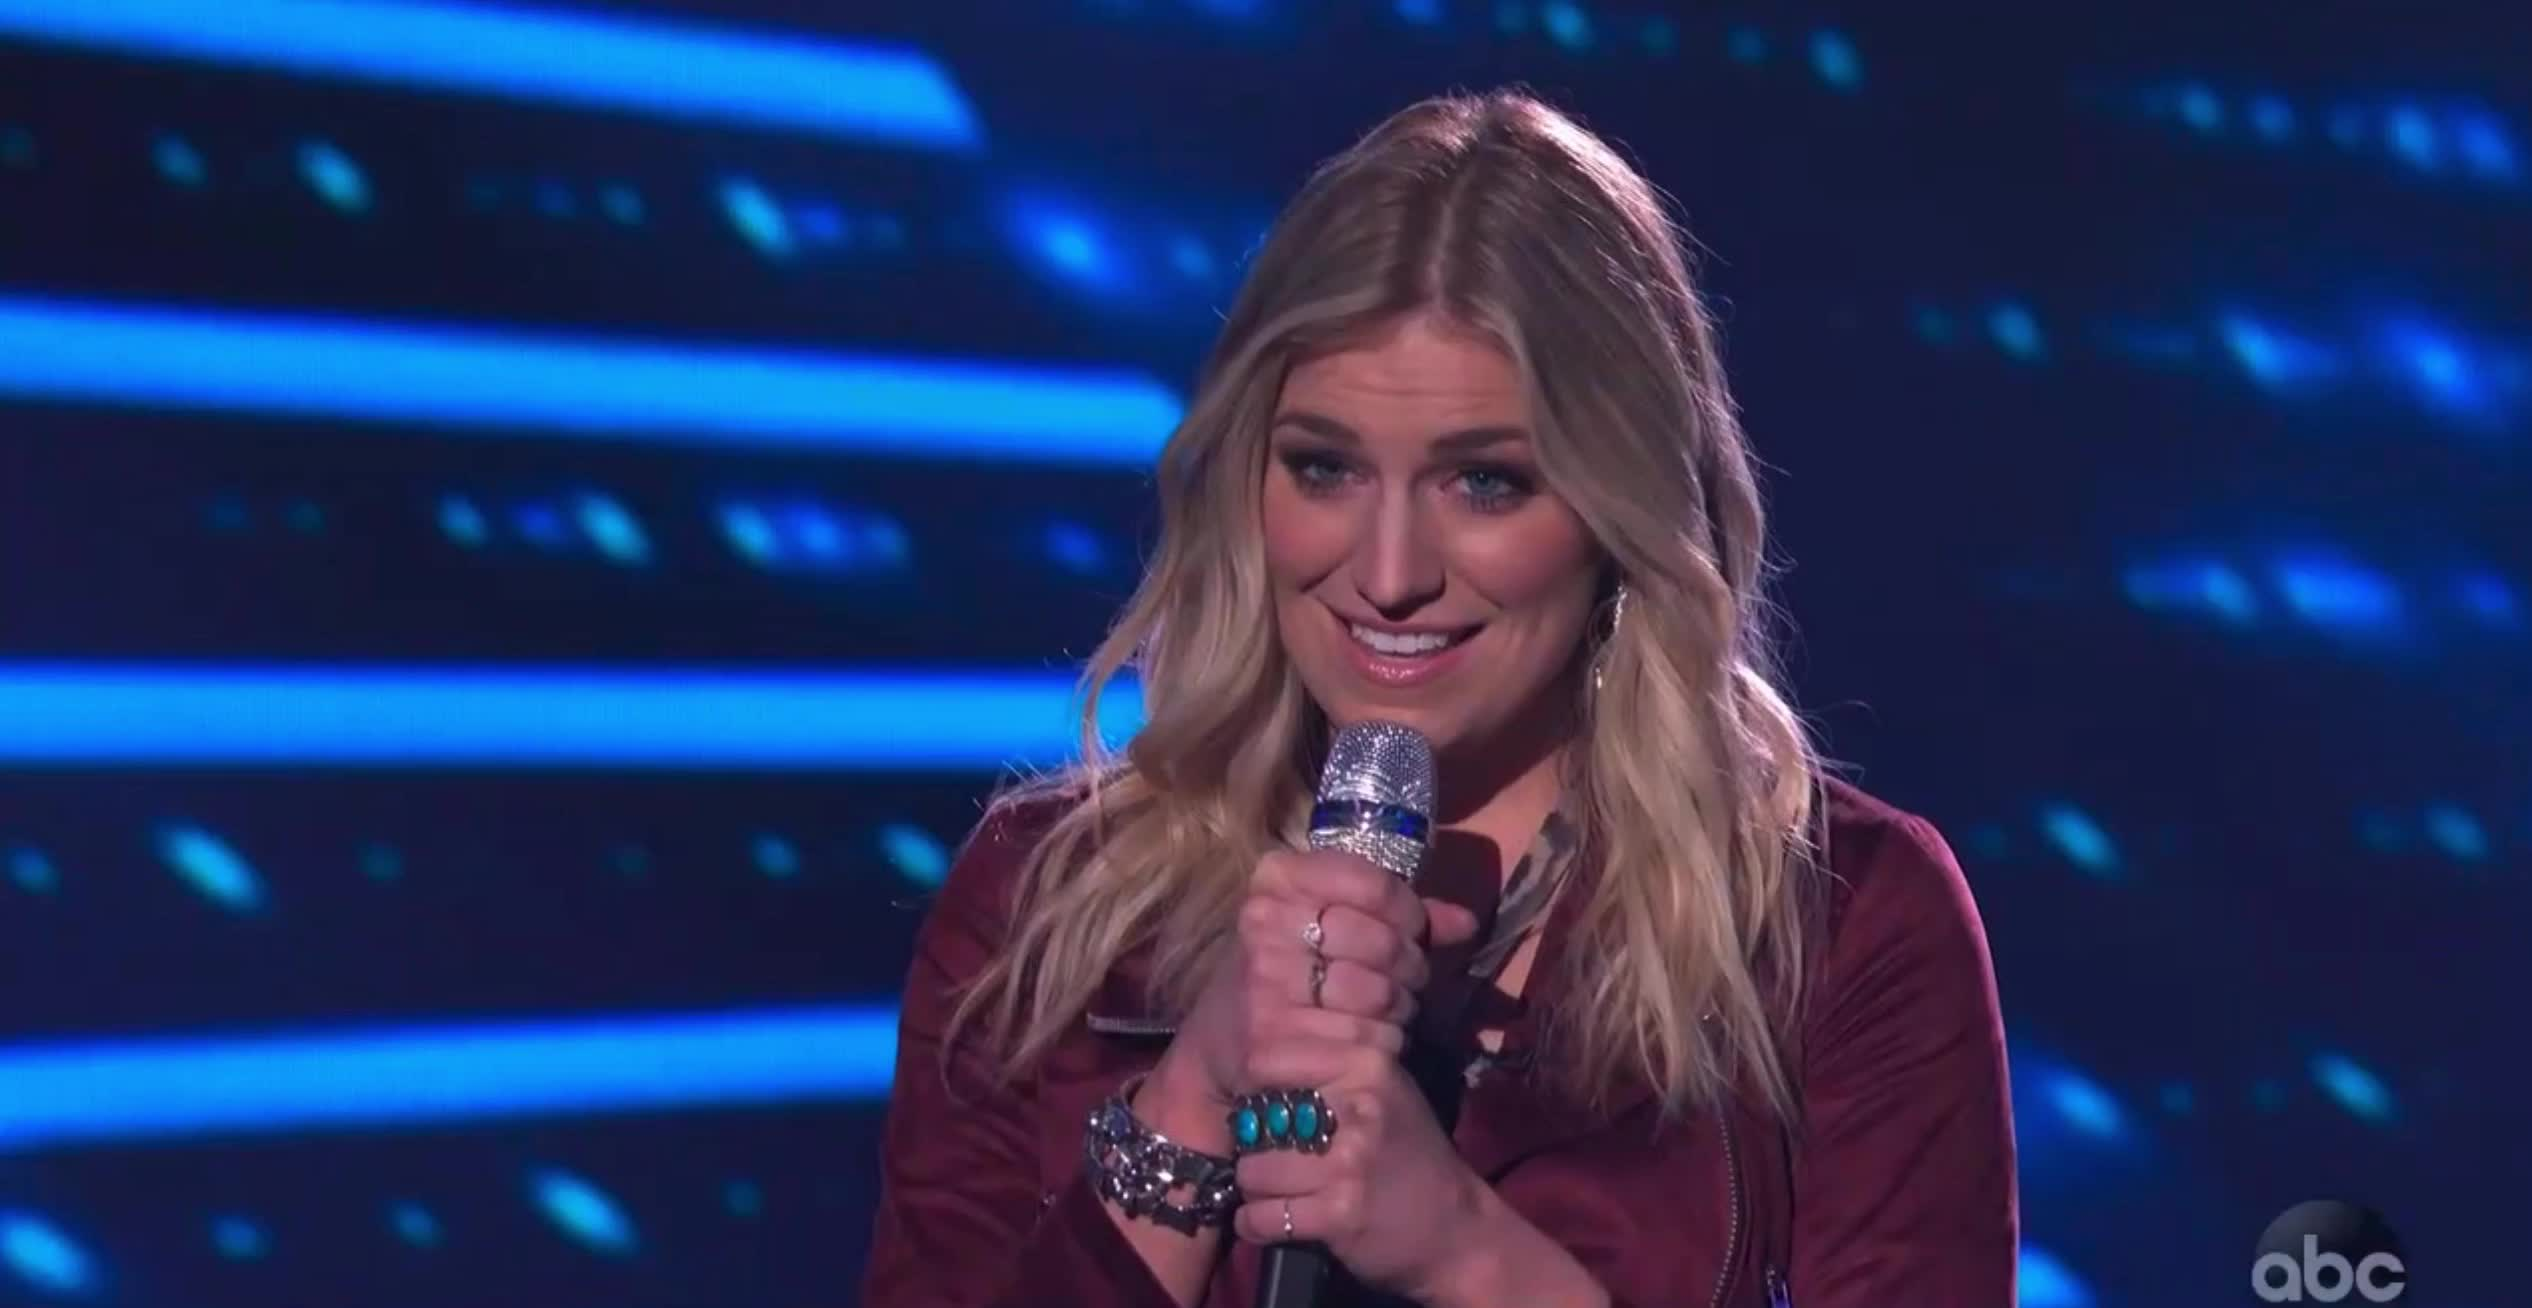 american idol, american idol season 17, americanidol, ashley hess, katy perry, lionel richie, luke bryan, ryan seacrest, season 17, thank you, thanks, American Idol Ashley Thank You GIFs